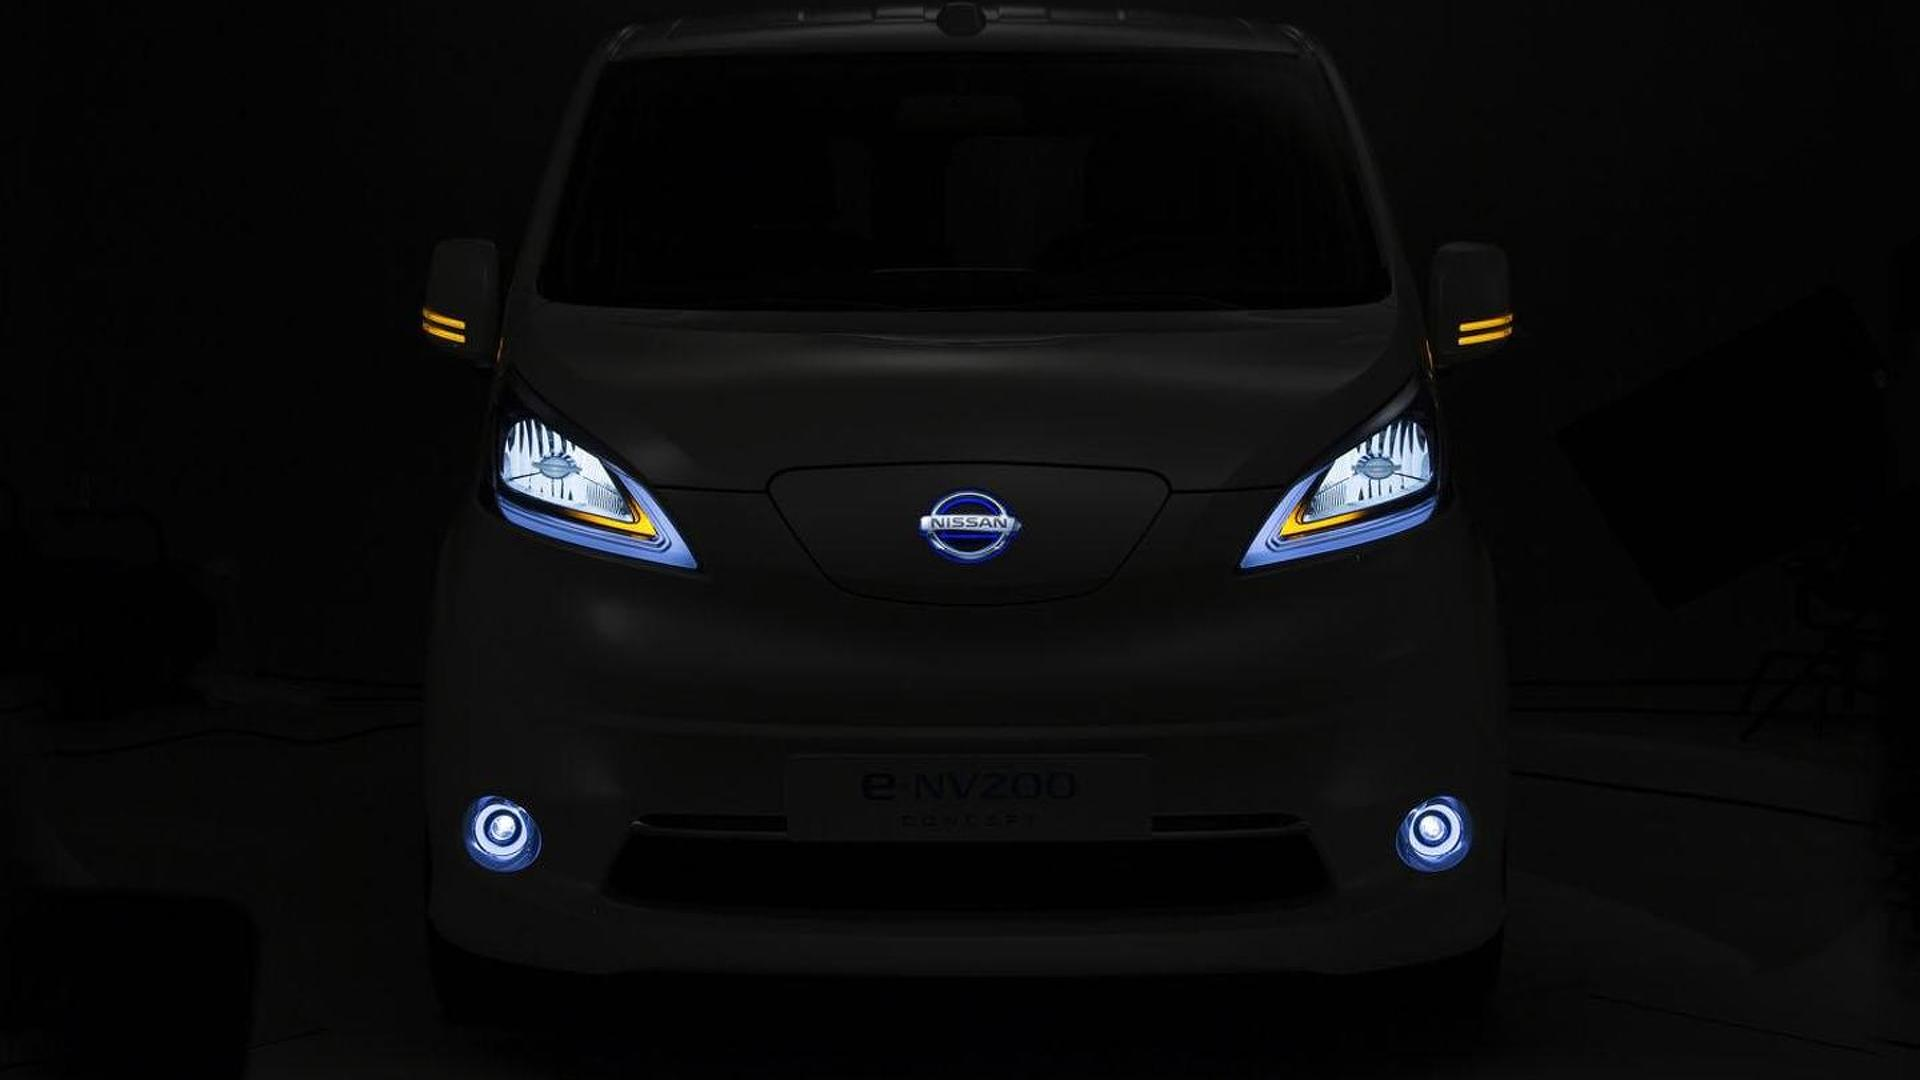 Nissan e-NV200 Panel Van concept teased for the Hanover Motor Show